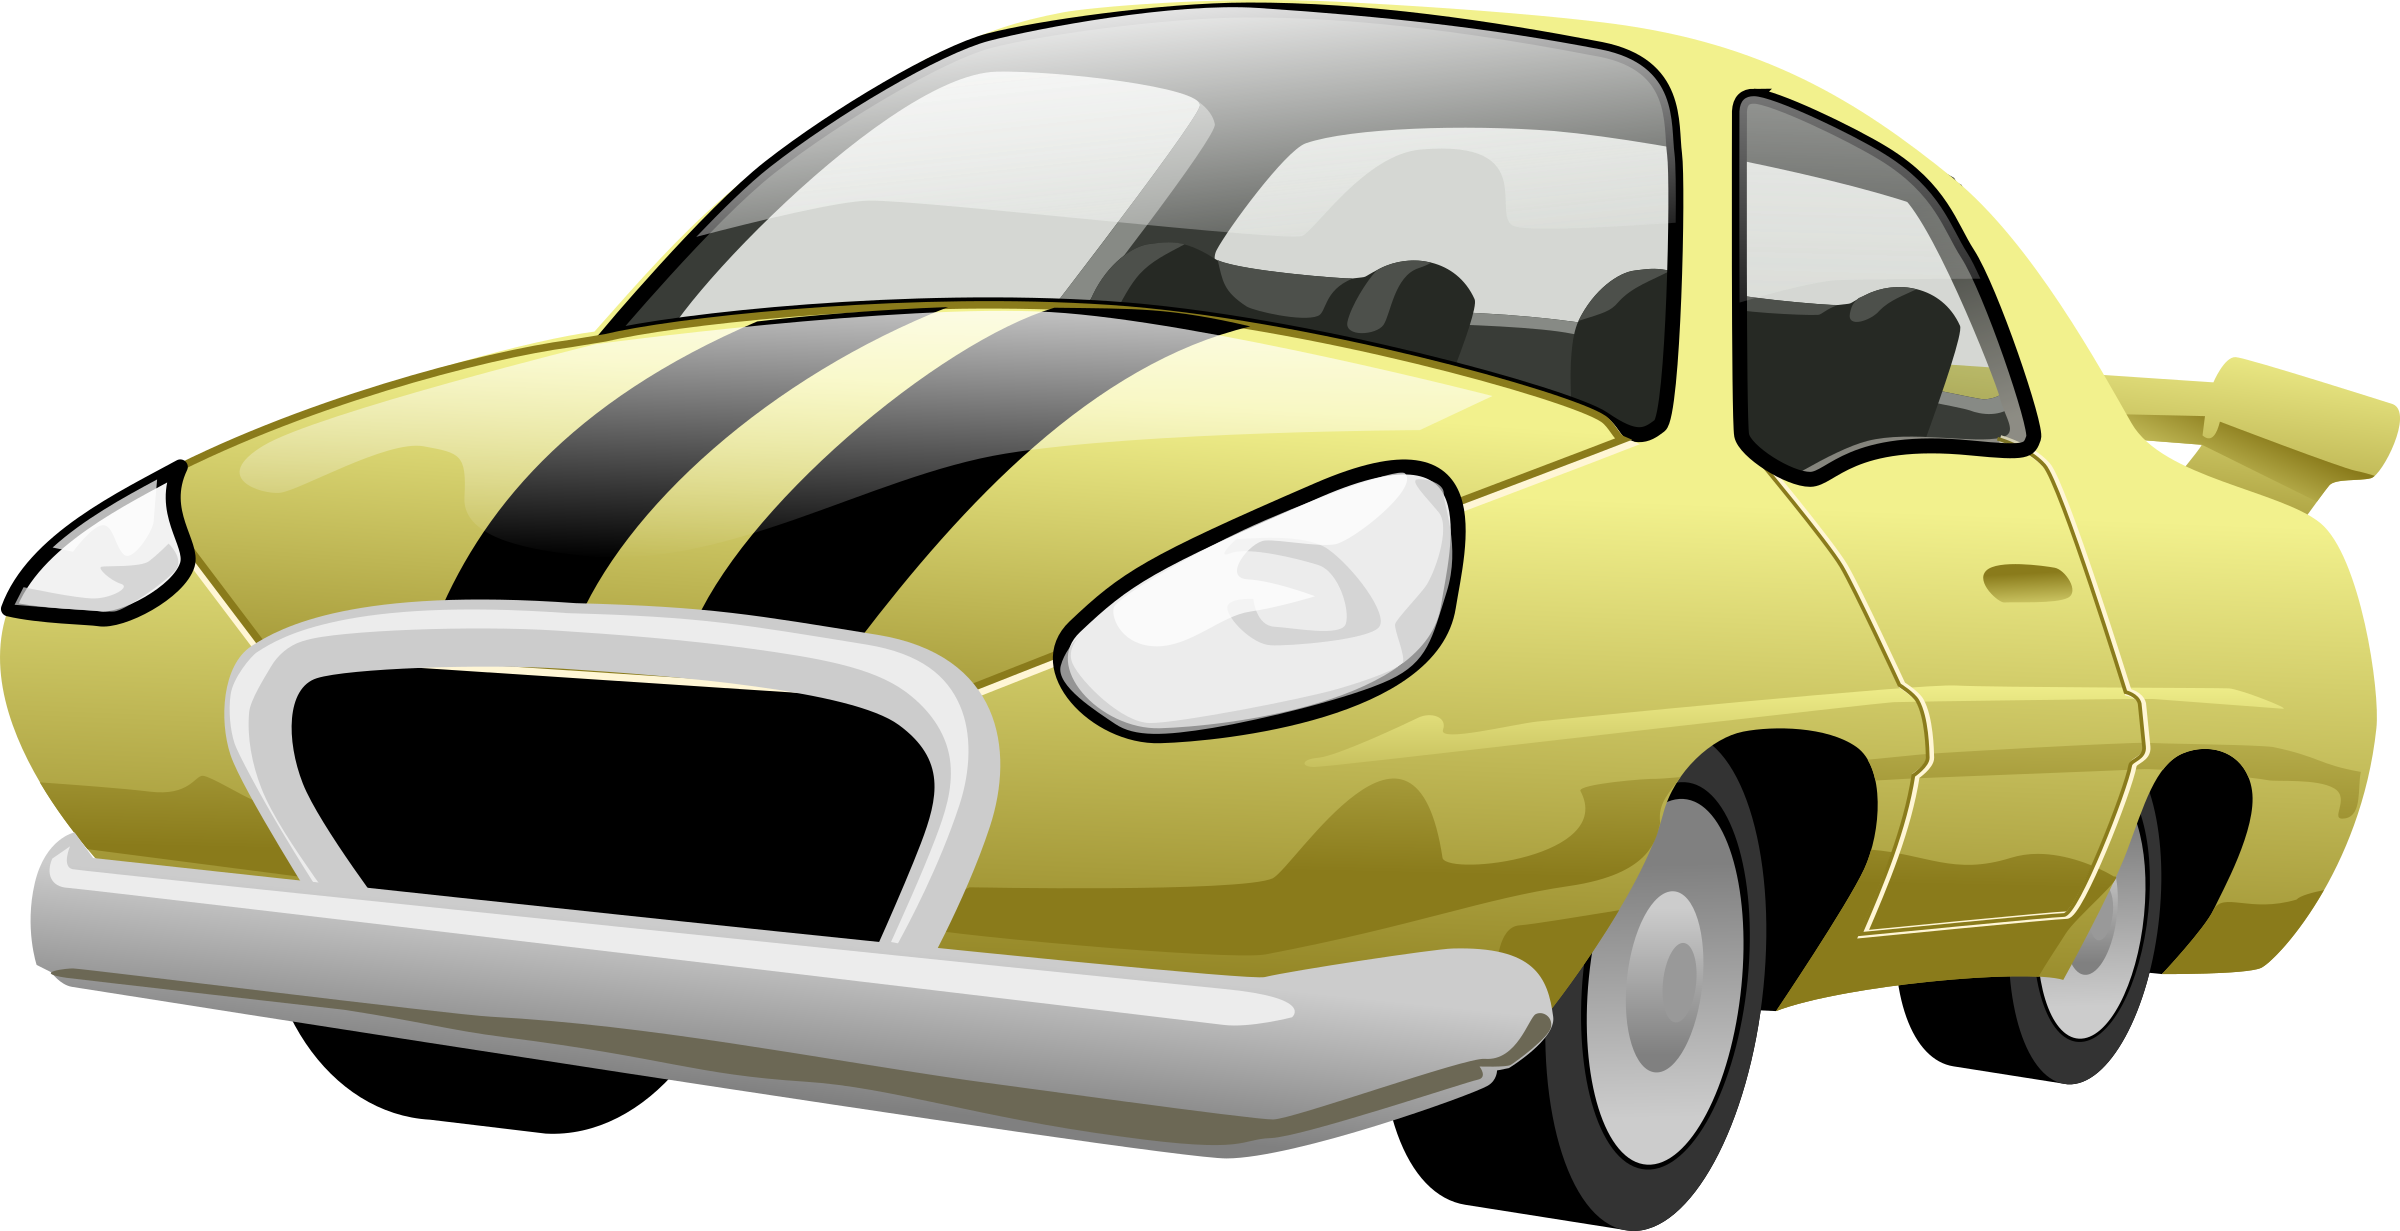 Vector cars png. Sports car transparent images